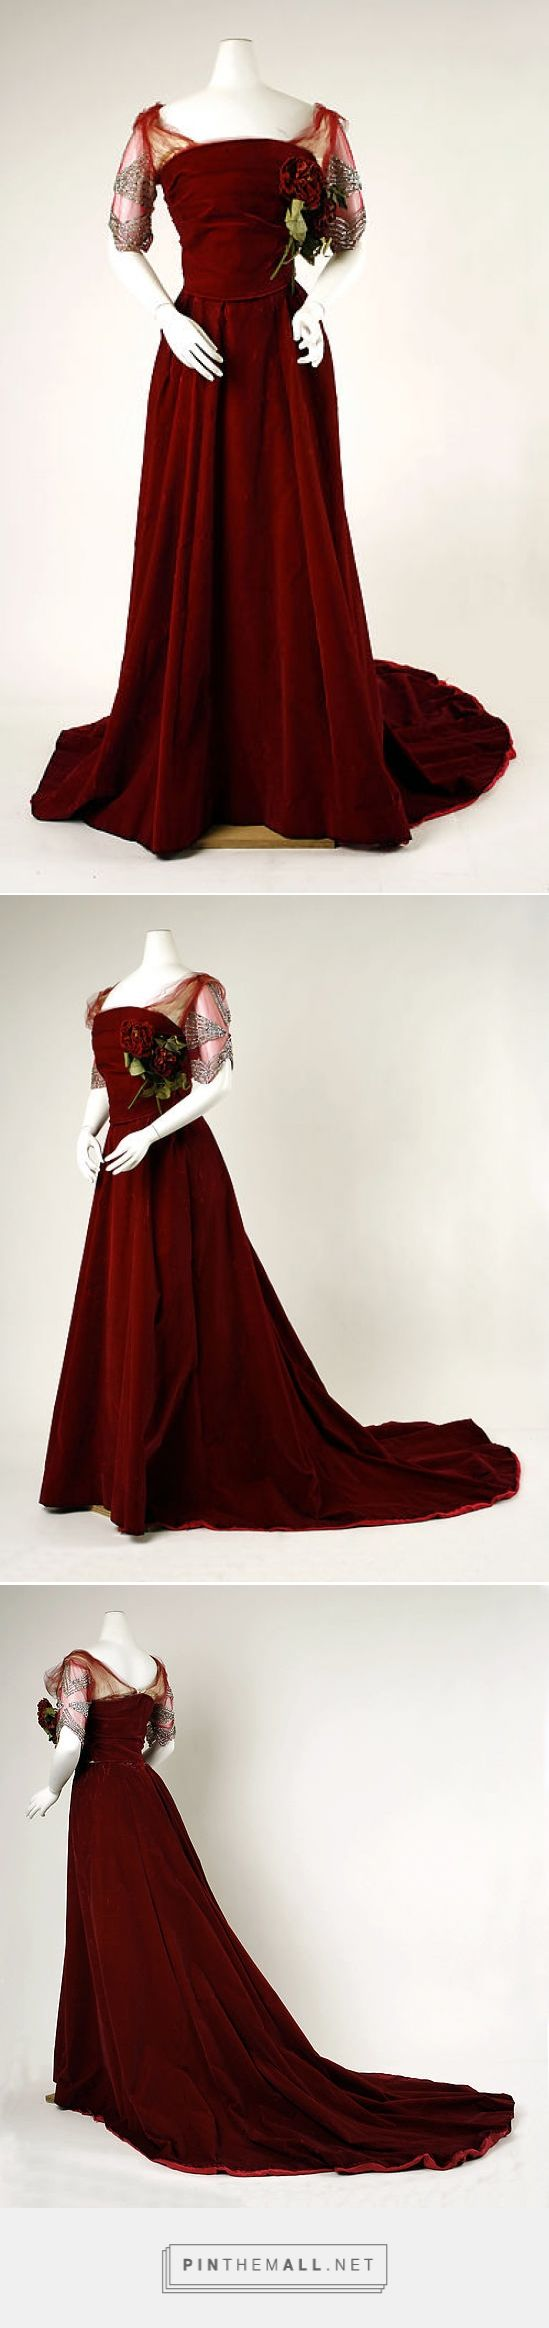 Evening dress by House of Worth 1898-1900 French   The Metropolitan Museum of Art